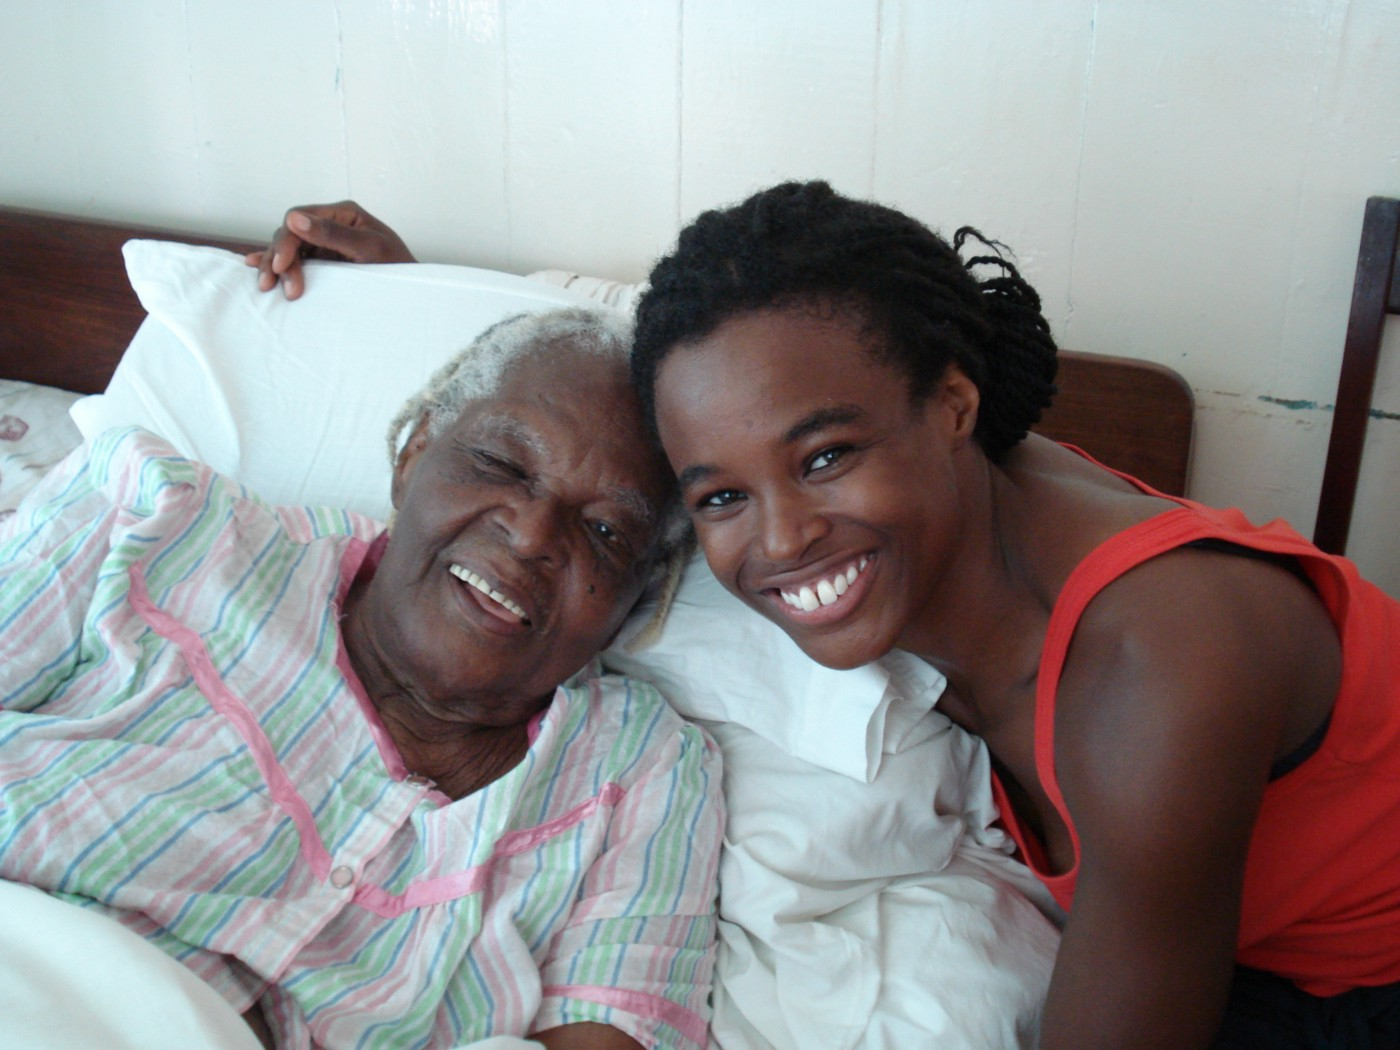 Two Black women smiling head to head, one elderly and bedridden.